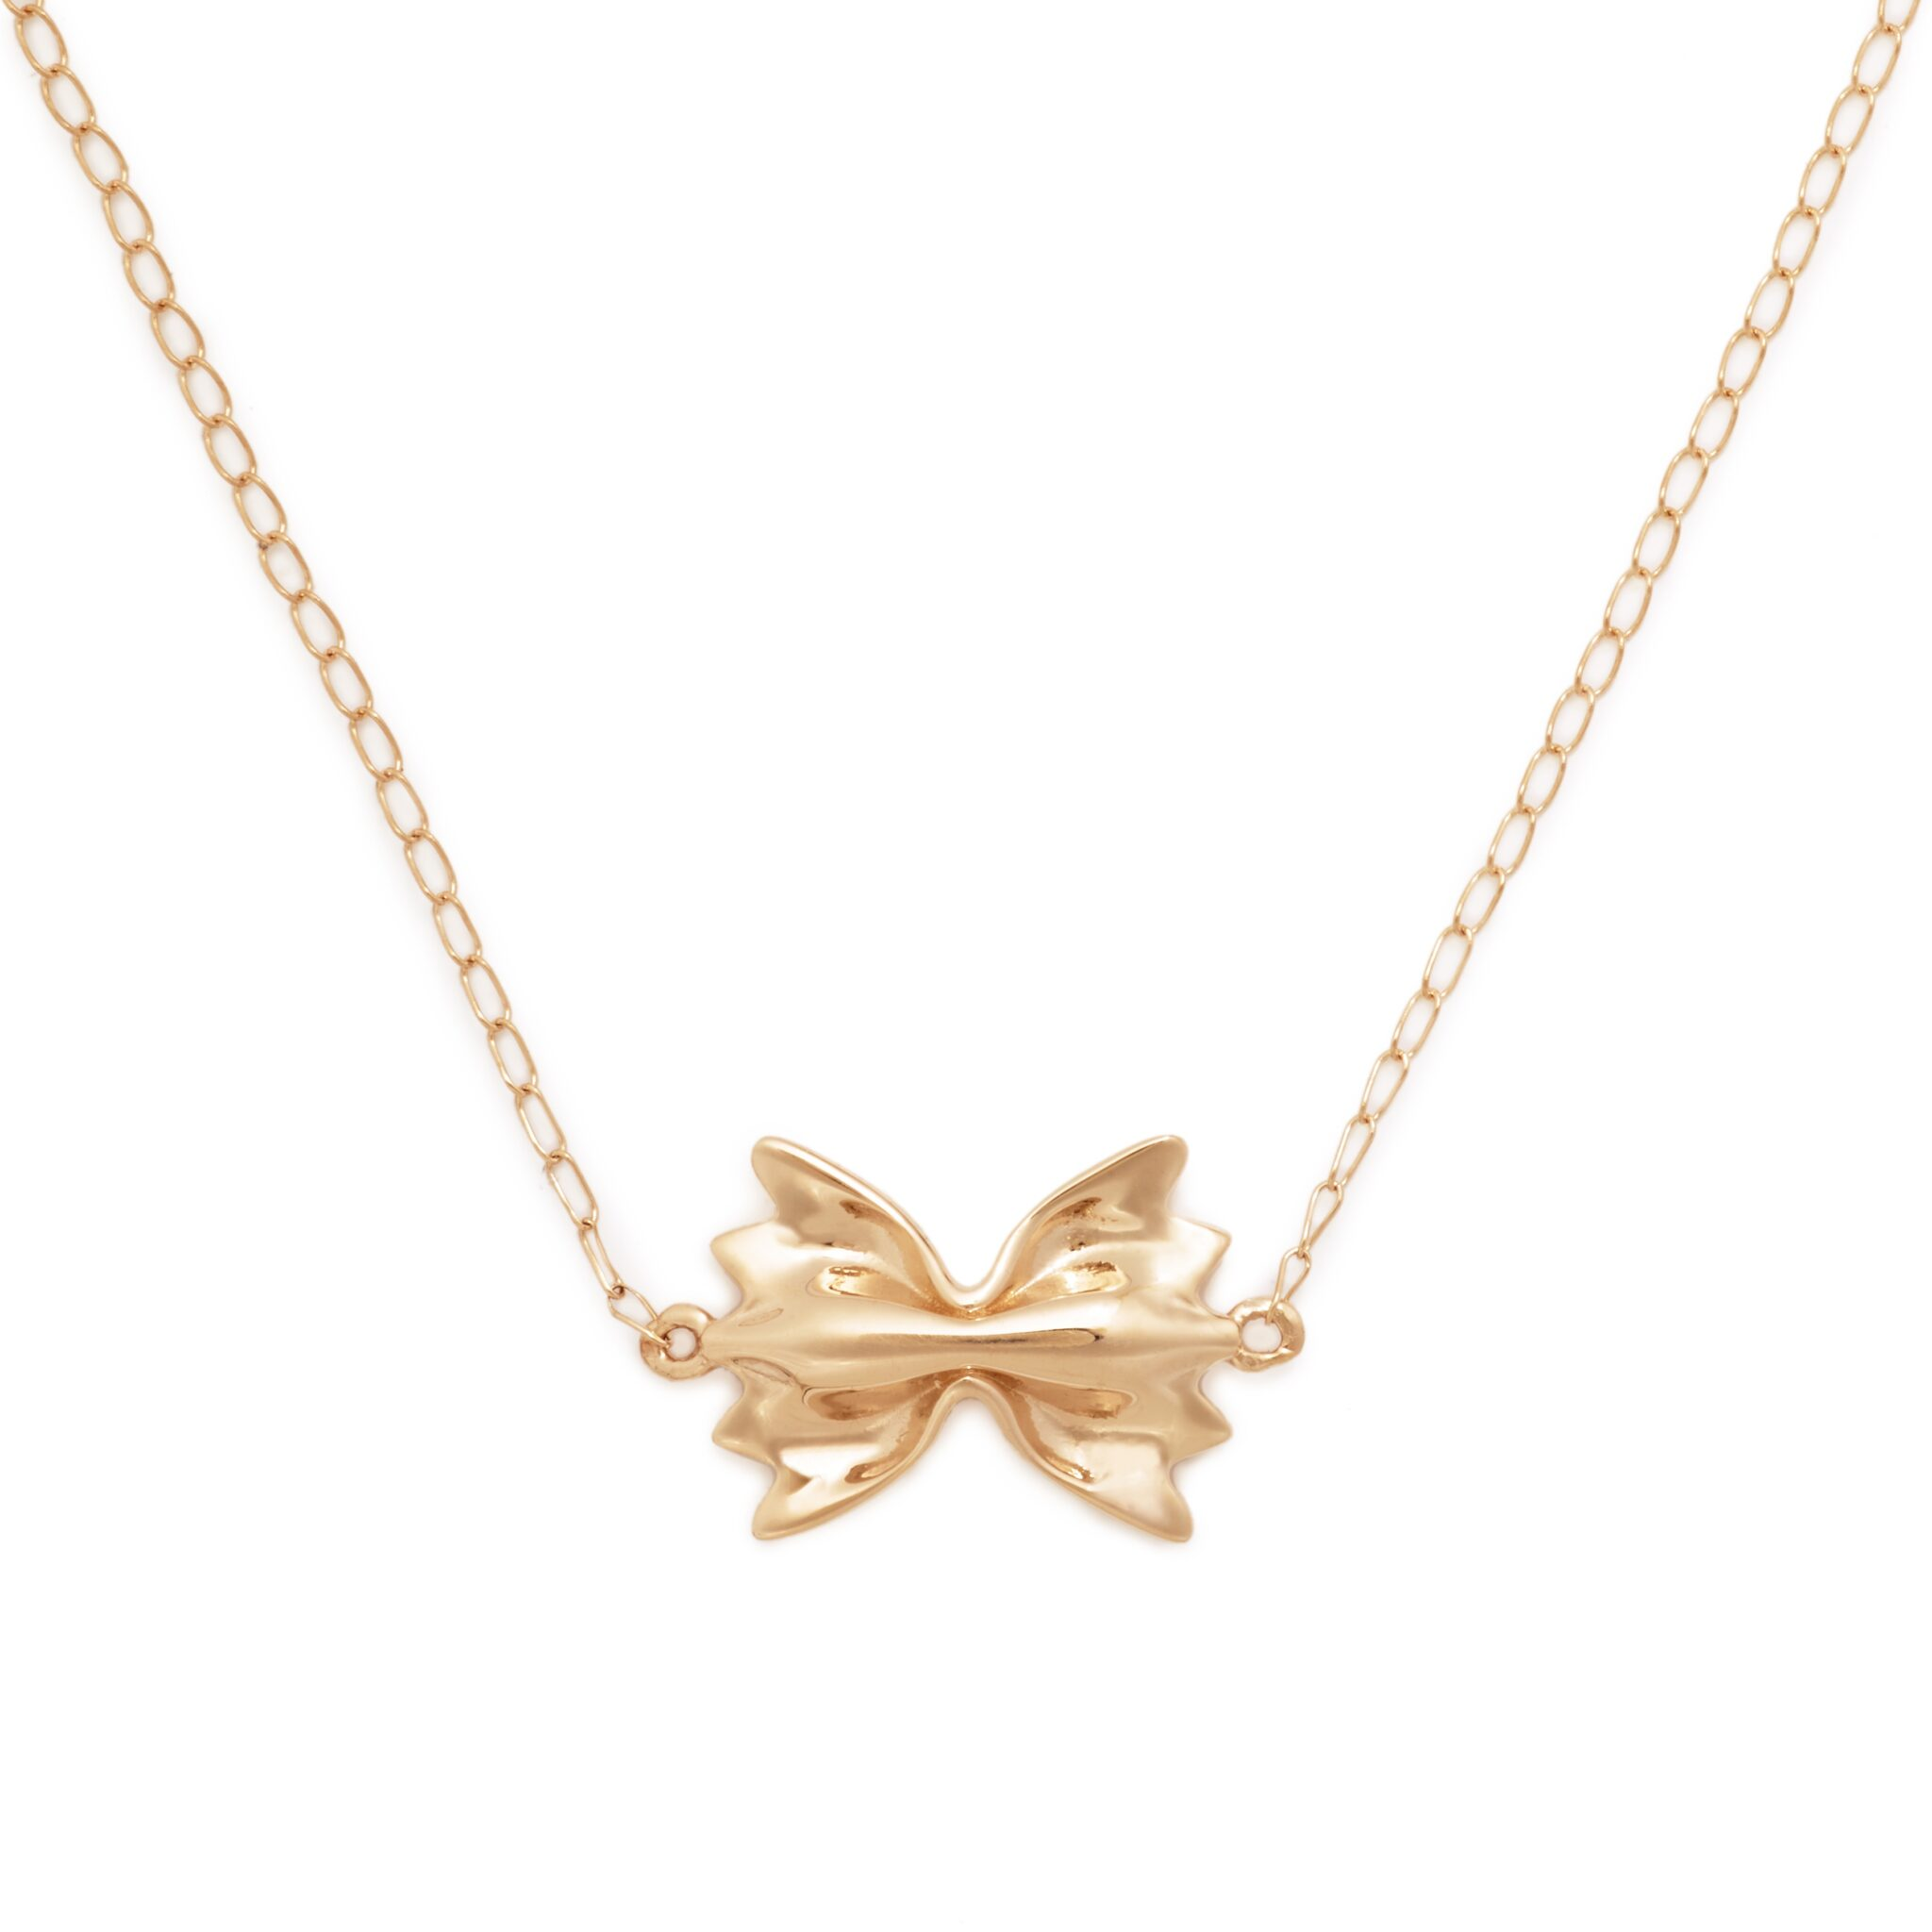 Farfalle Necklace, Mini Size, Yellow Gold Plated